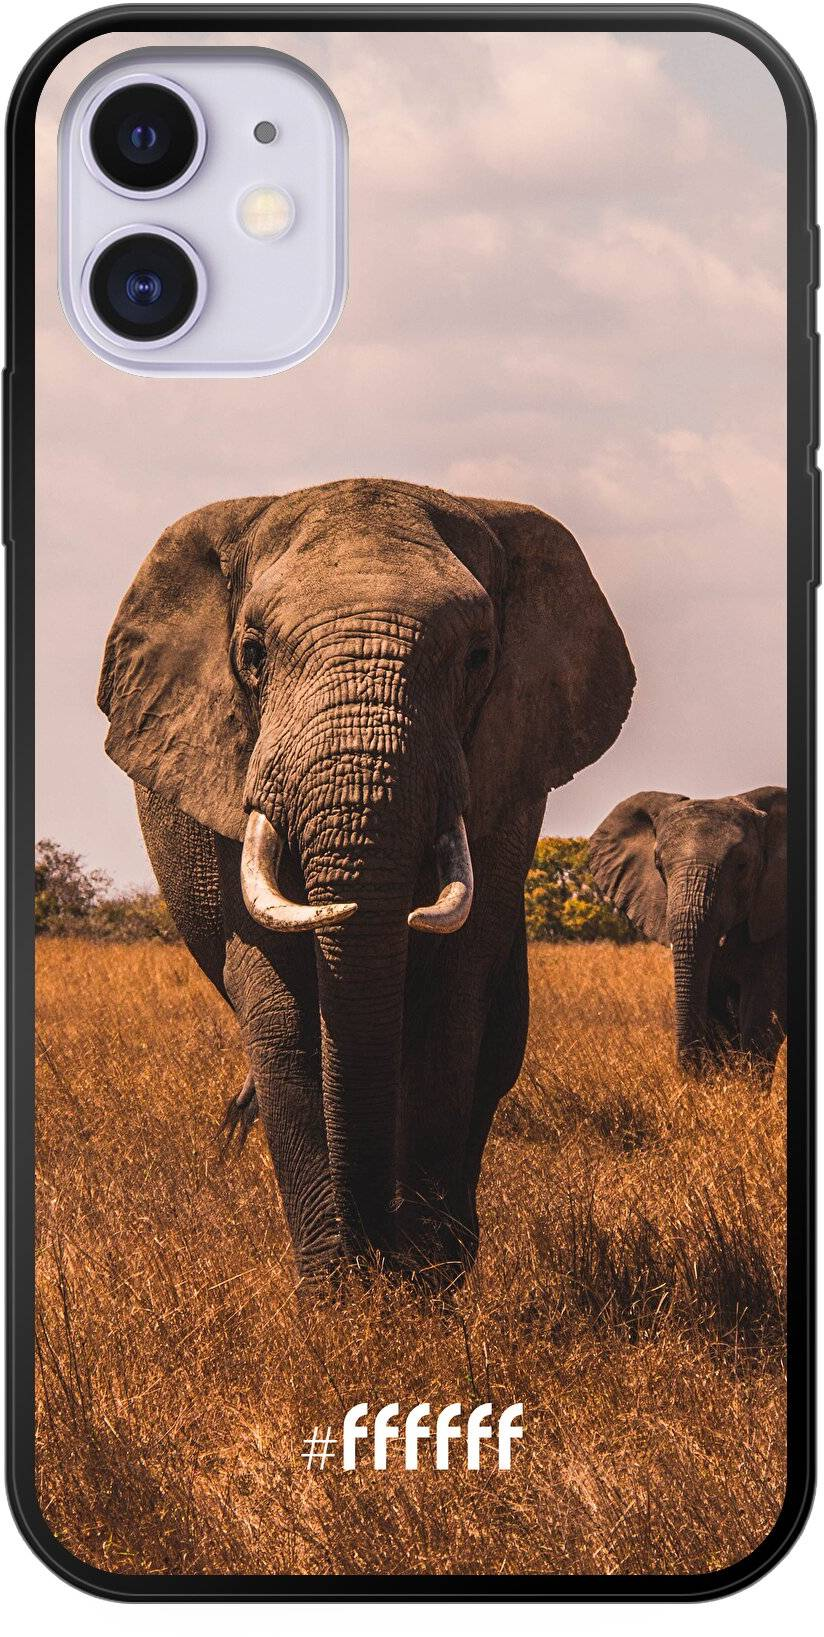 Elephants iPhone 11